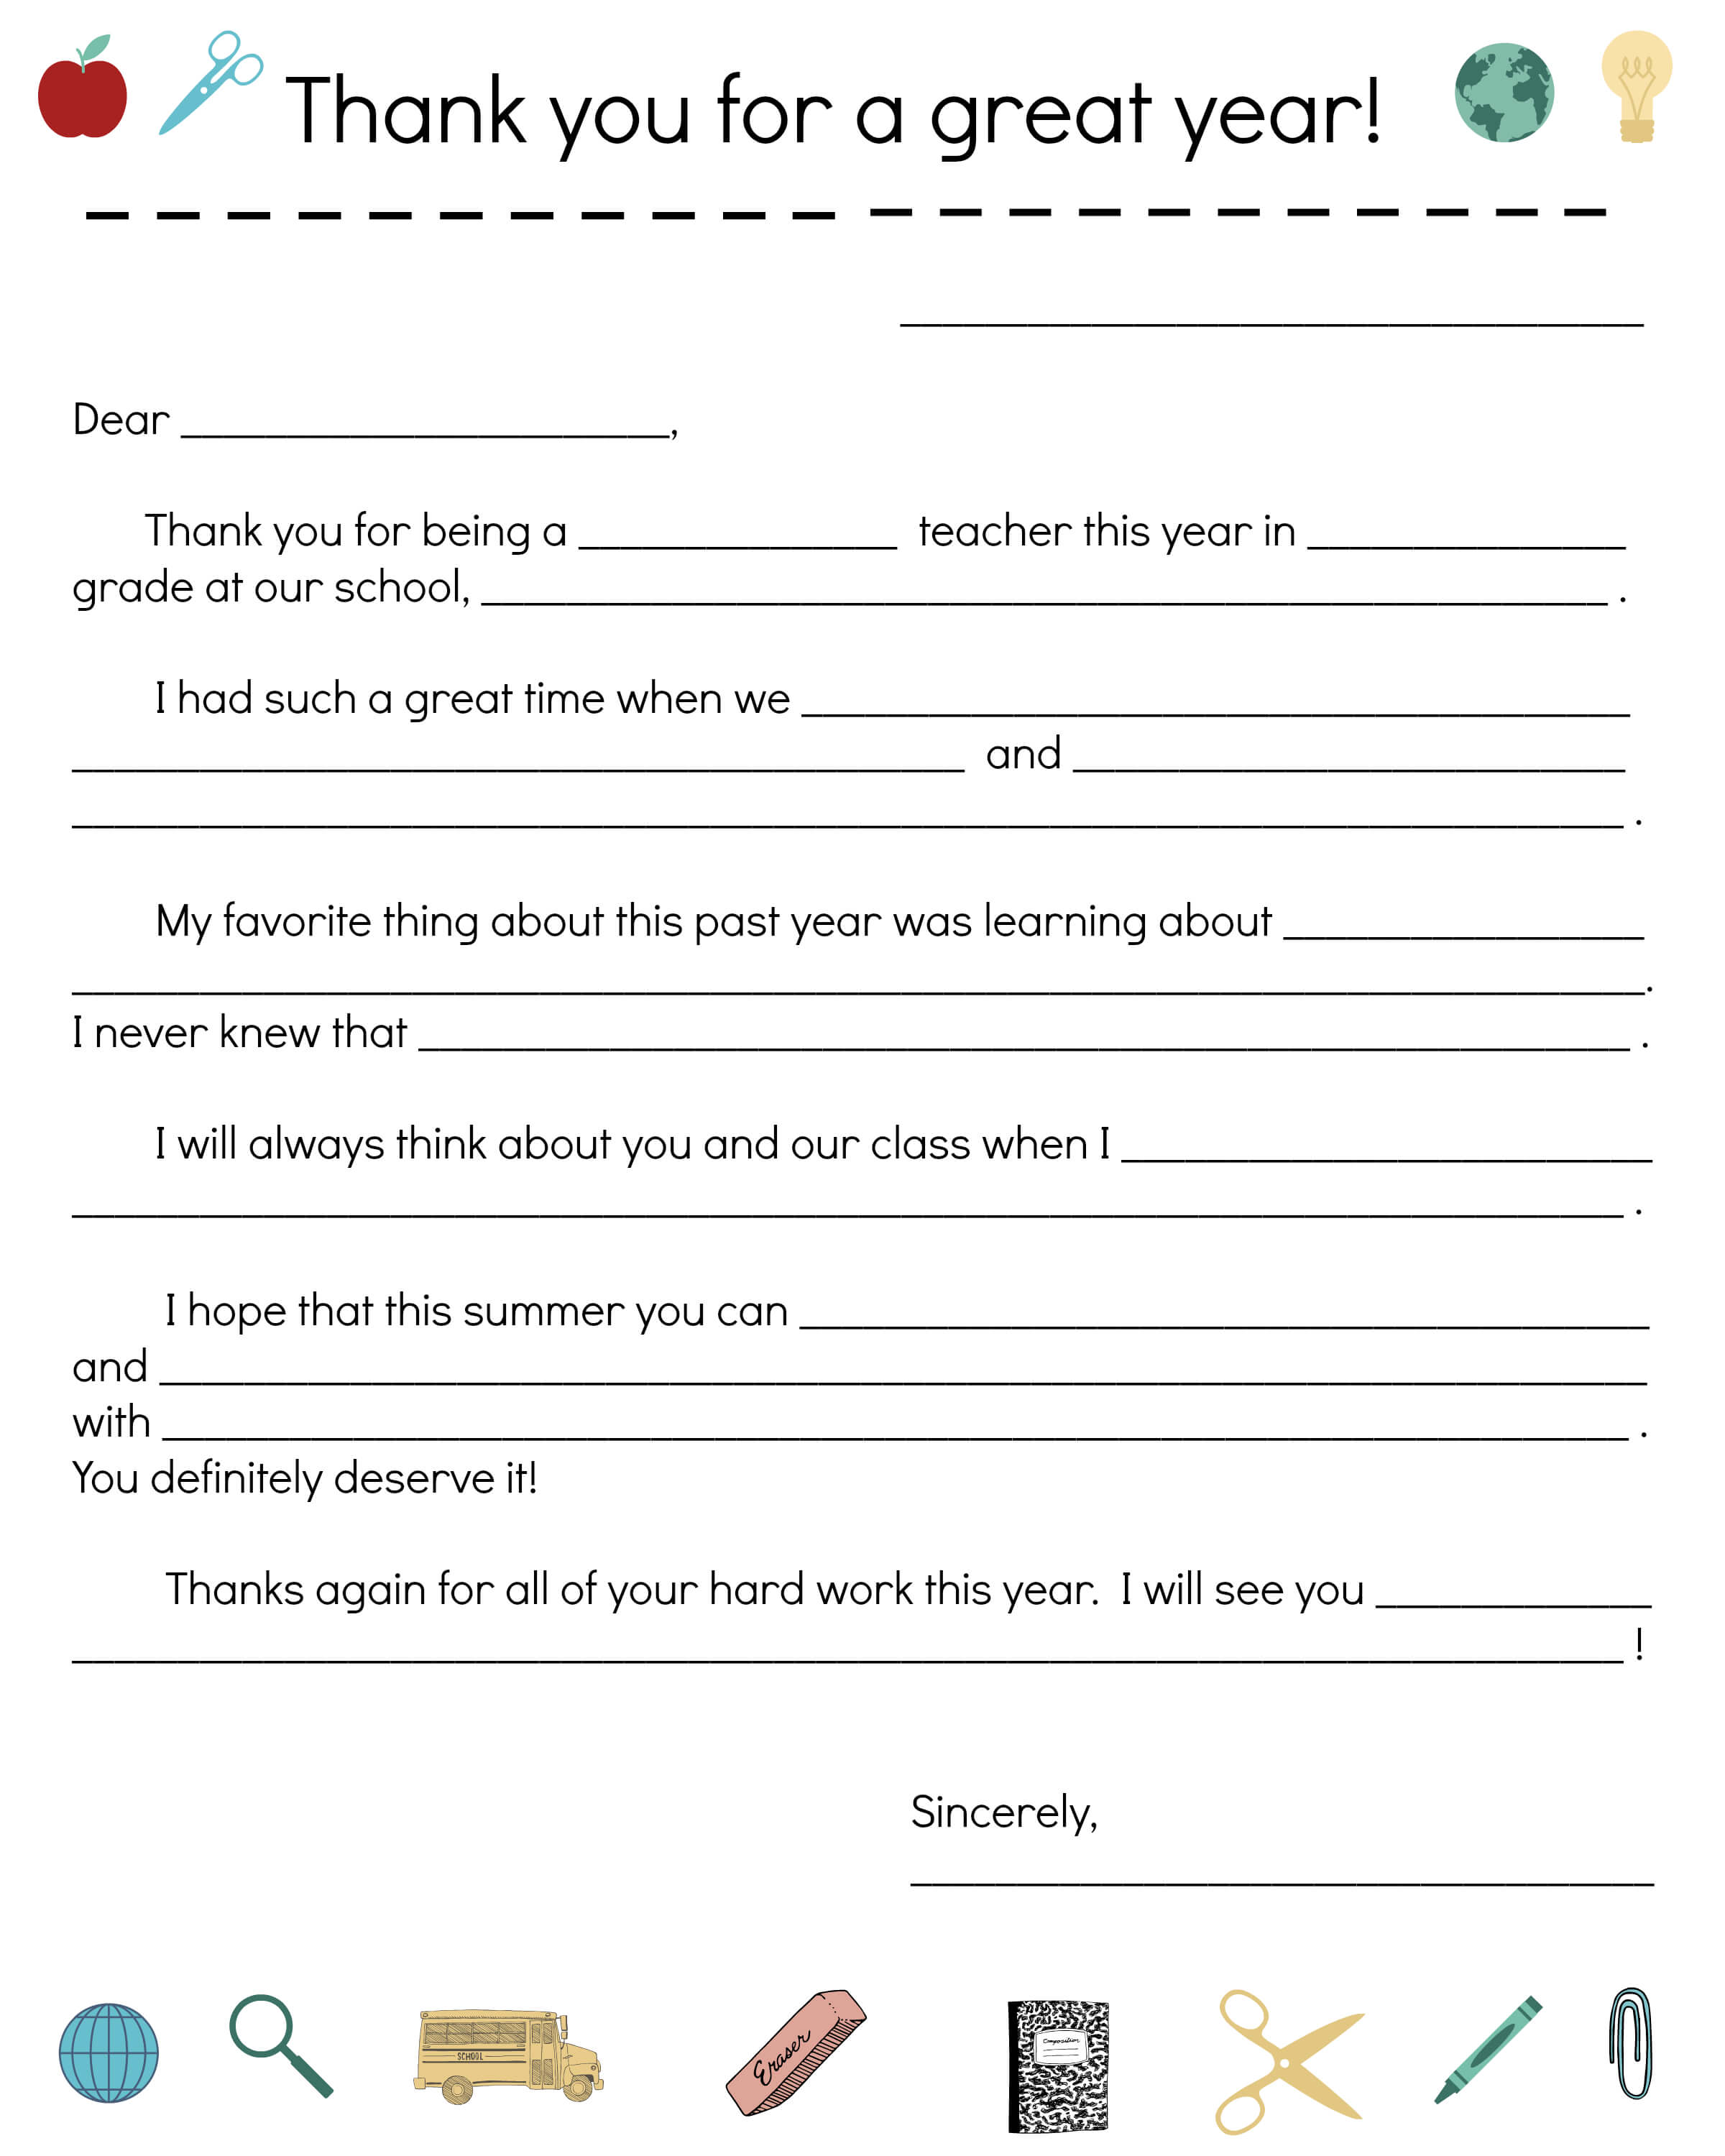 Say Thanks To Teachers With A Fill-In Note From Your Child regarding Thank You Card For Teacher Template